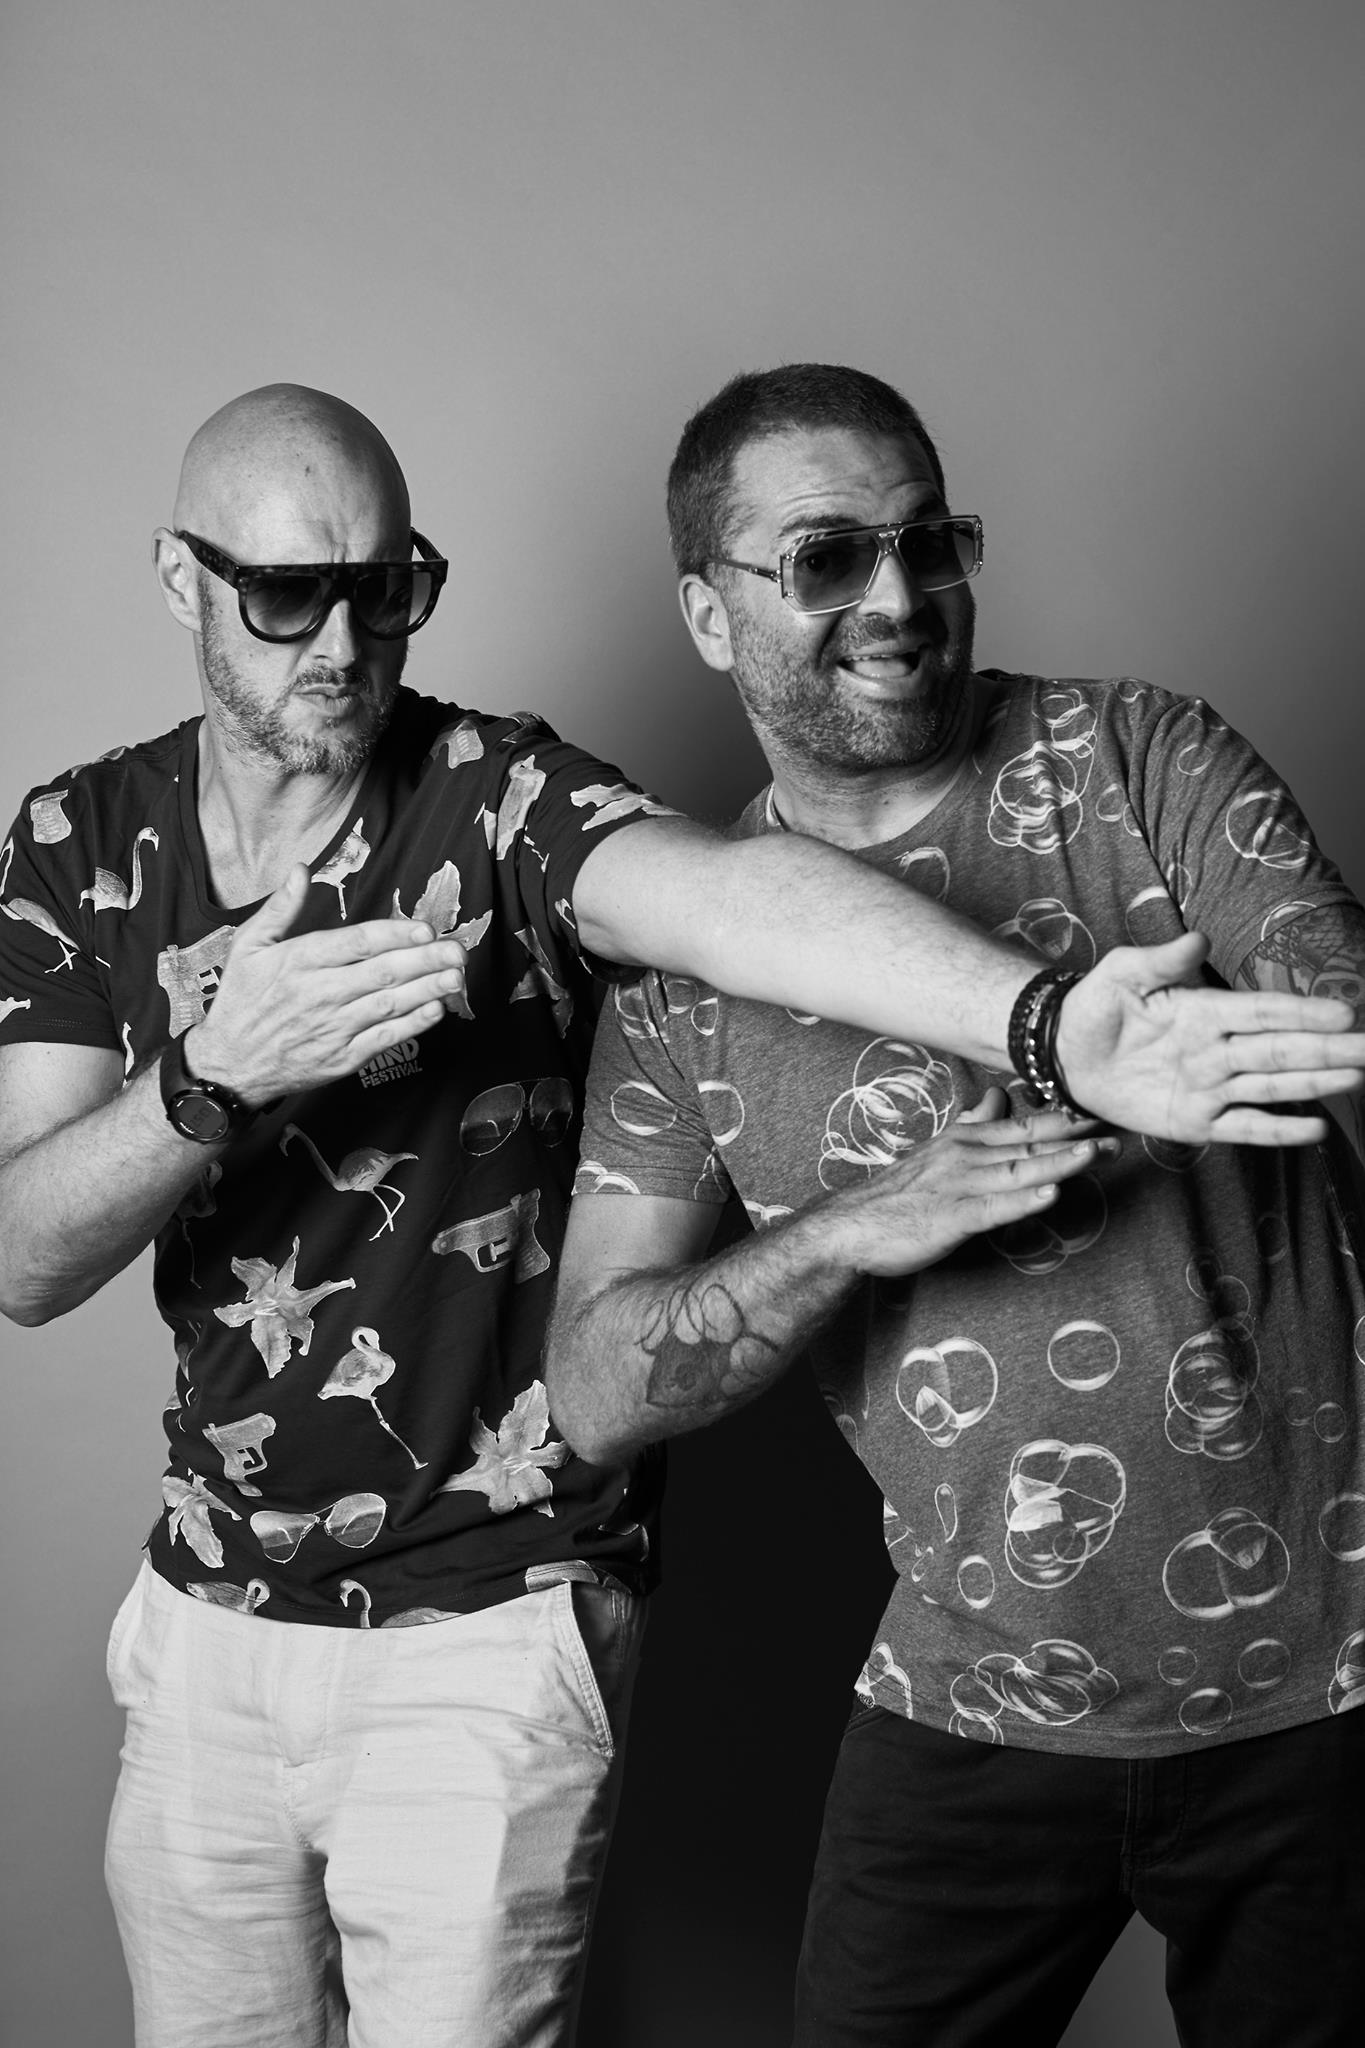 Pig & Dan - live at Nuits Sonores (Lyon, France) - 07-Oct-2016